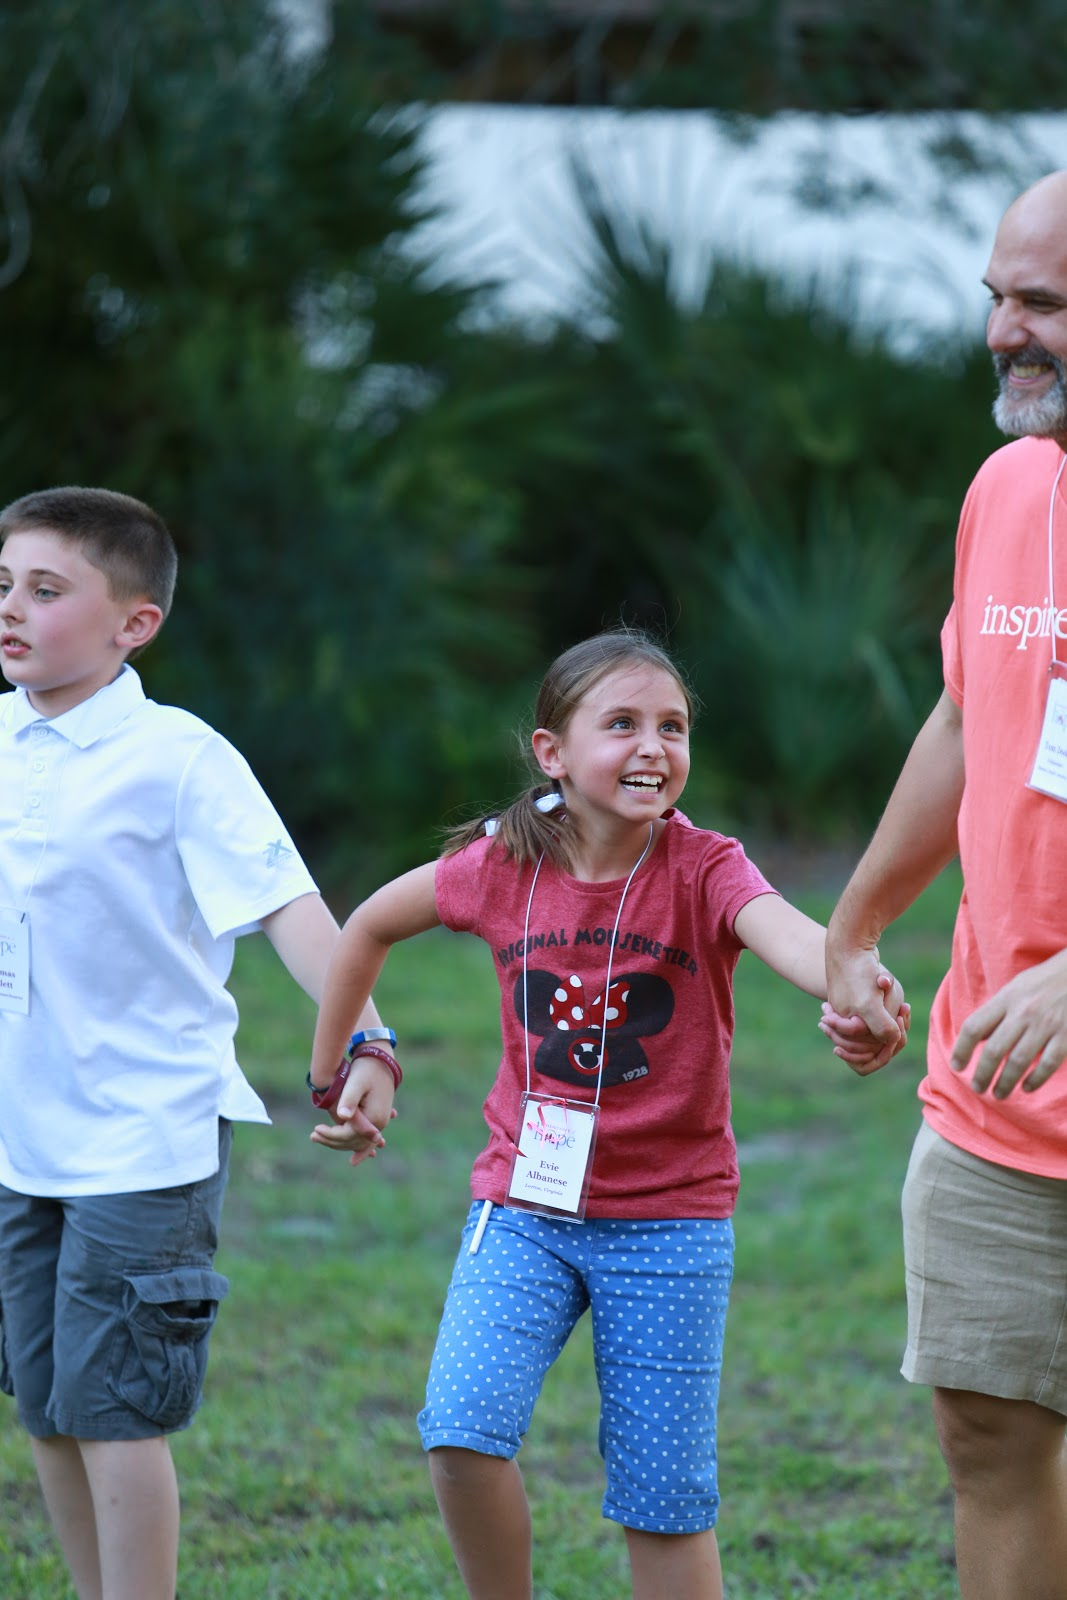 Tom creating a precious memory for another child at a retreat in Orlando, Florida